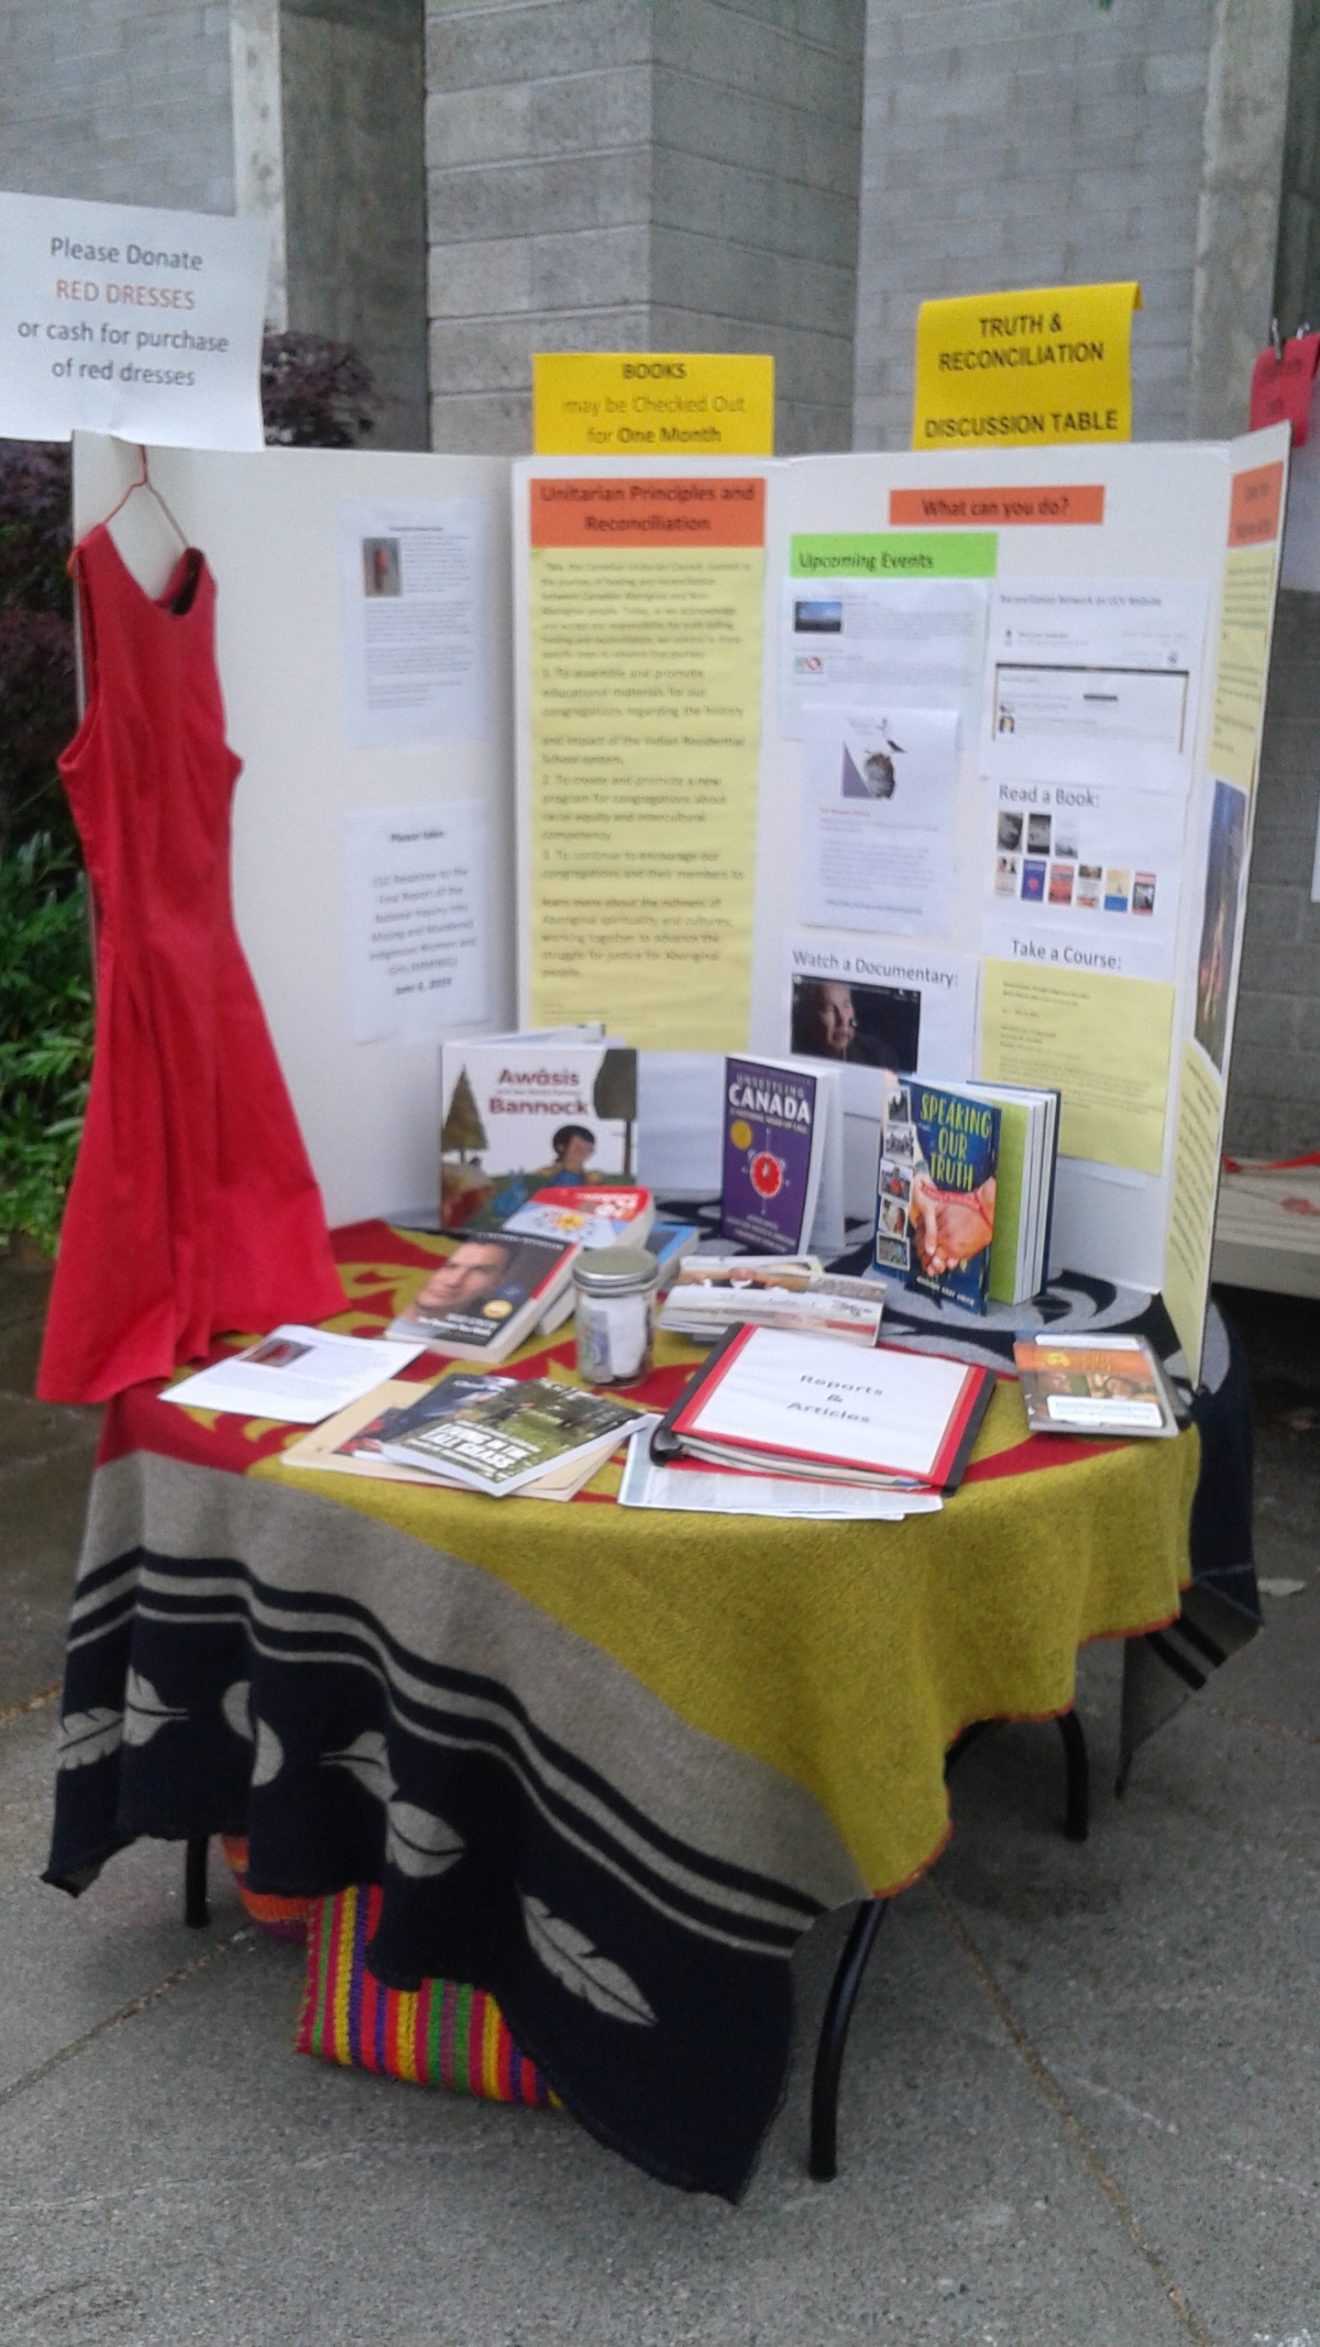 Truth & Reconciliation Discussion Table